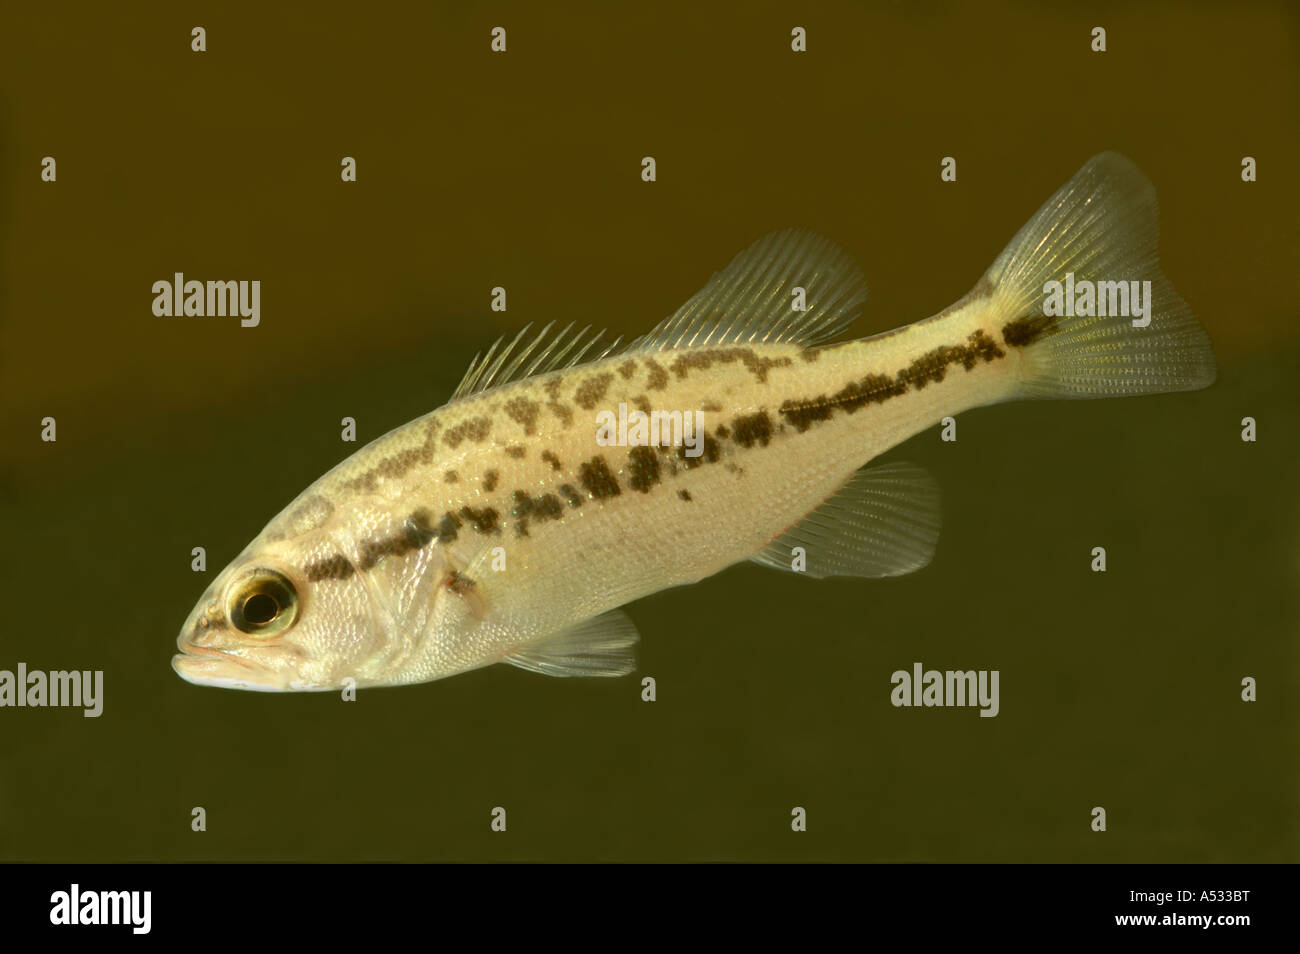 Smallmouth bass Micropterus dolomieu, juvenile - Stock Image